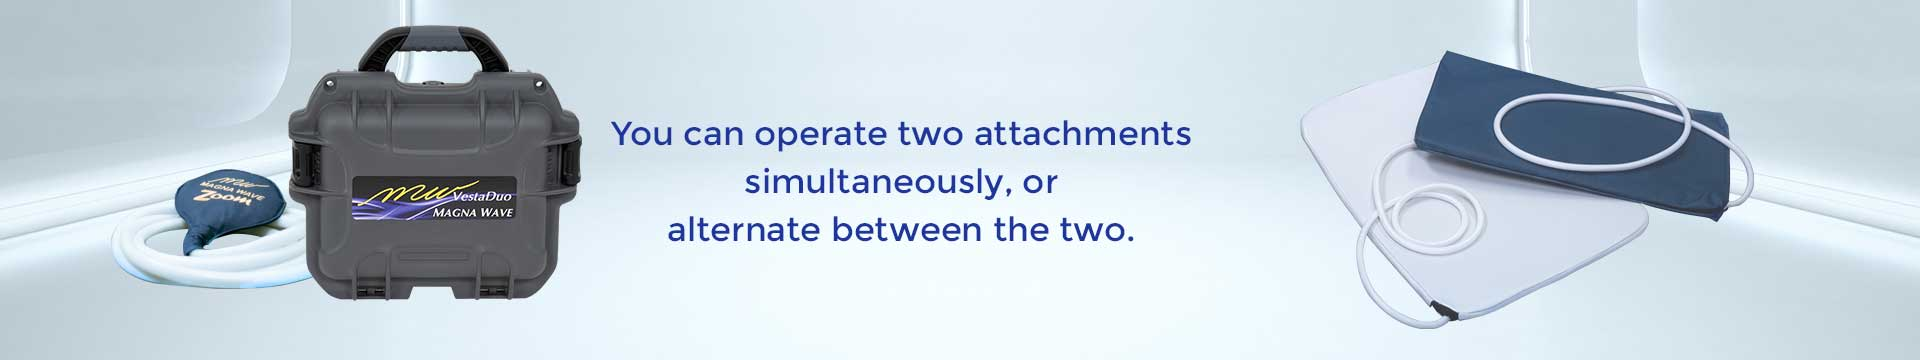 You can operate two attachments simultaneously, or alternate between the two